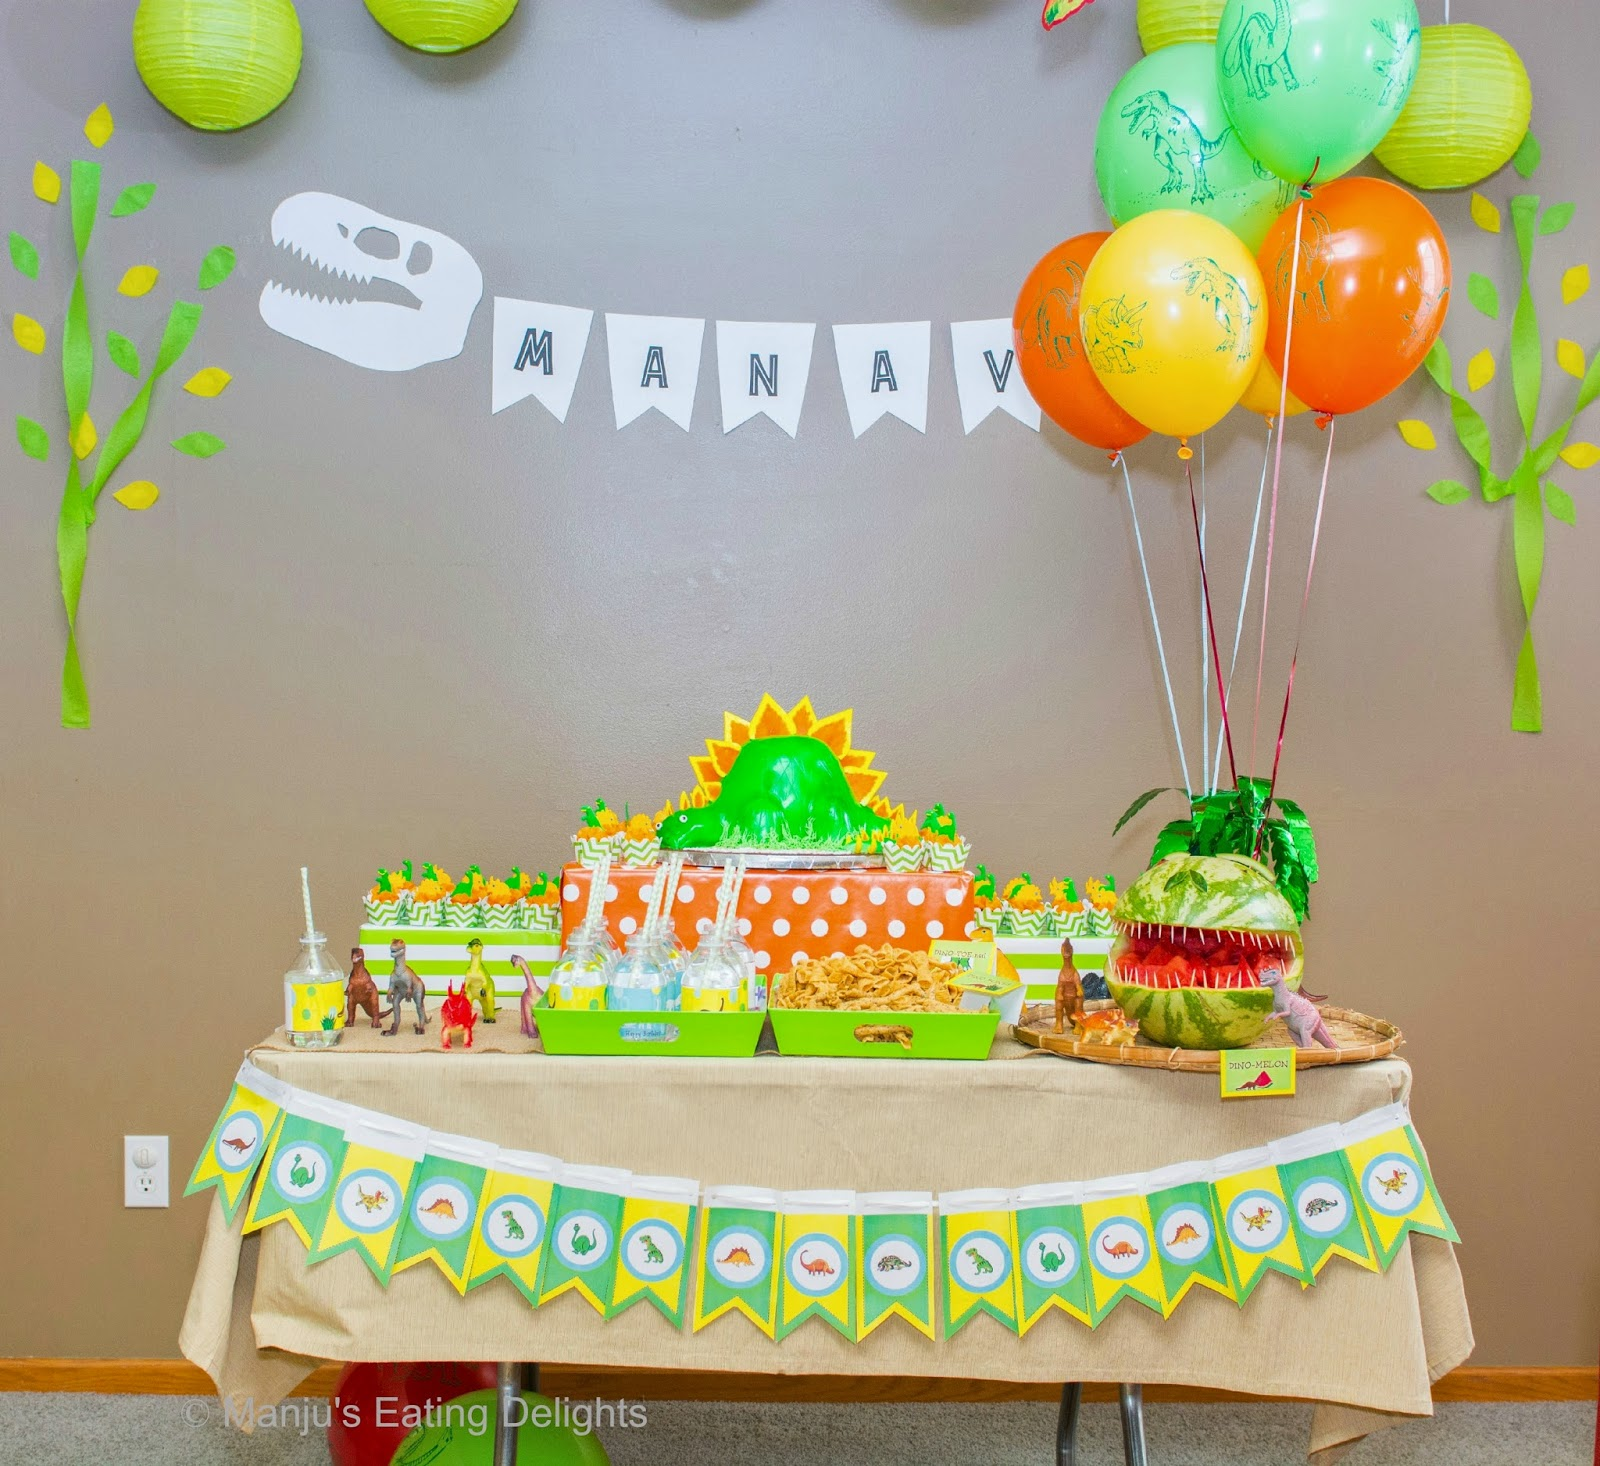 Decoration Stuff For Party Manjus Eating Delights Dinosaur Bday Partymanav Turns 3 Roar